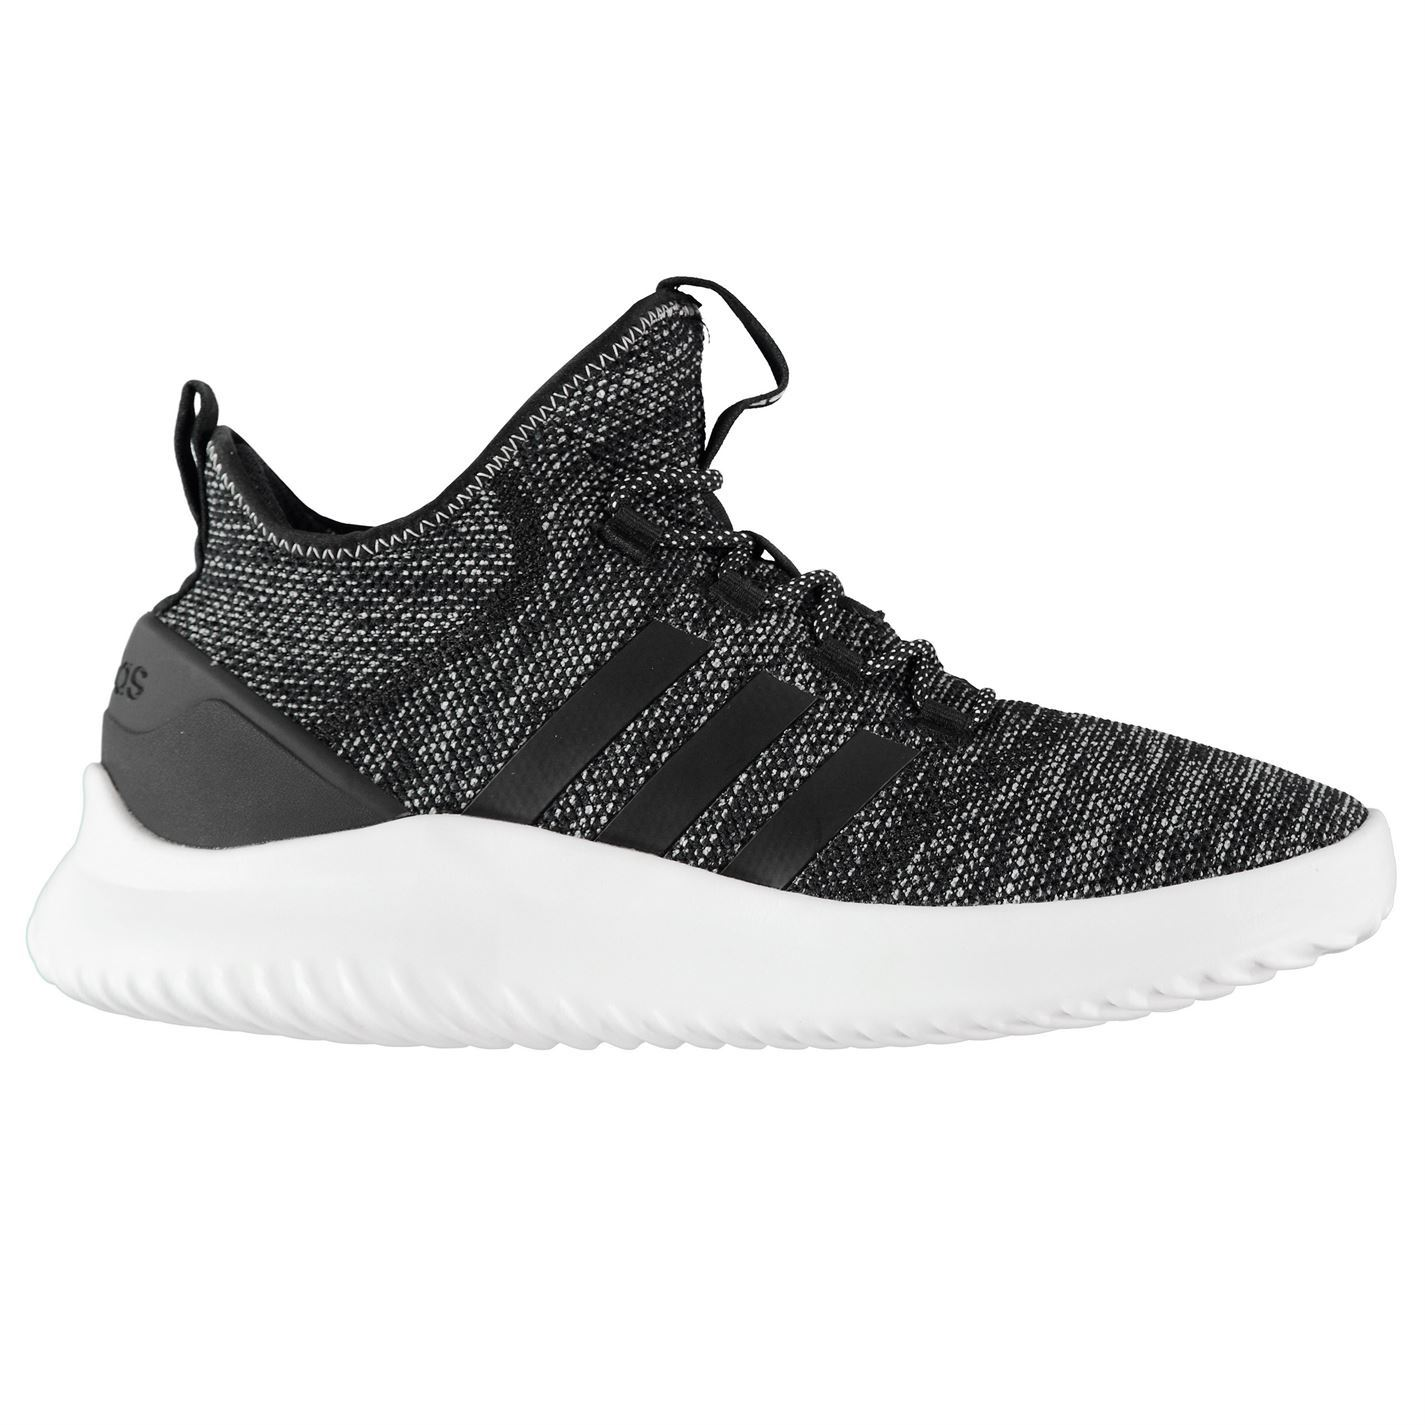 Adidas Uomo Cloudfoam Ultimate B Ball Trainers Runners Lace Lace Lace Up Knit Stretch 1244b5